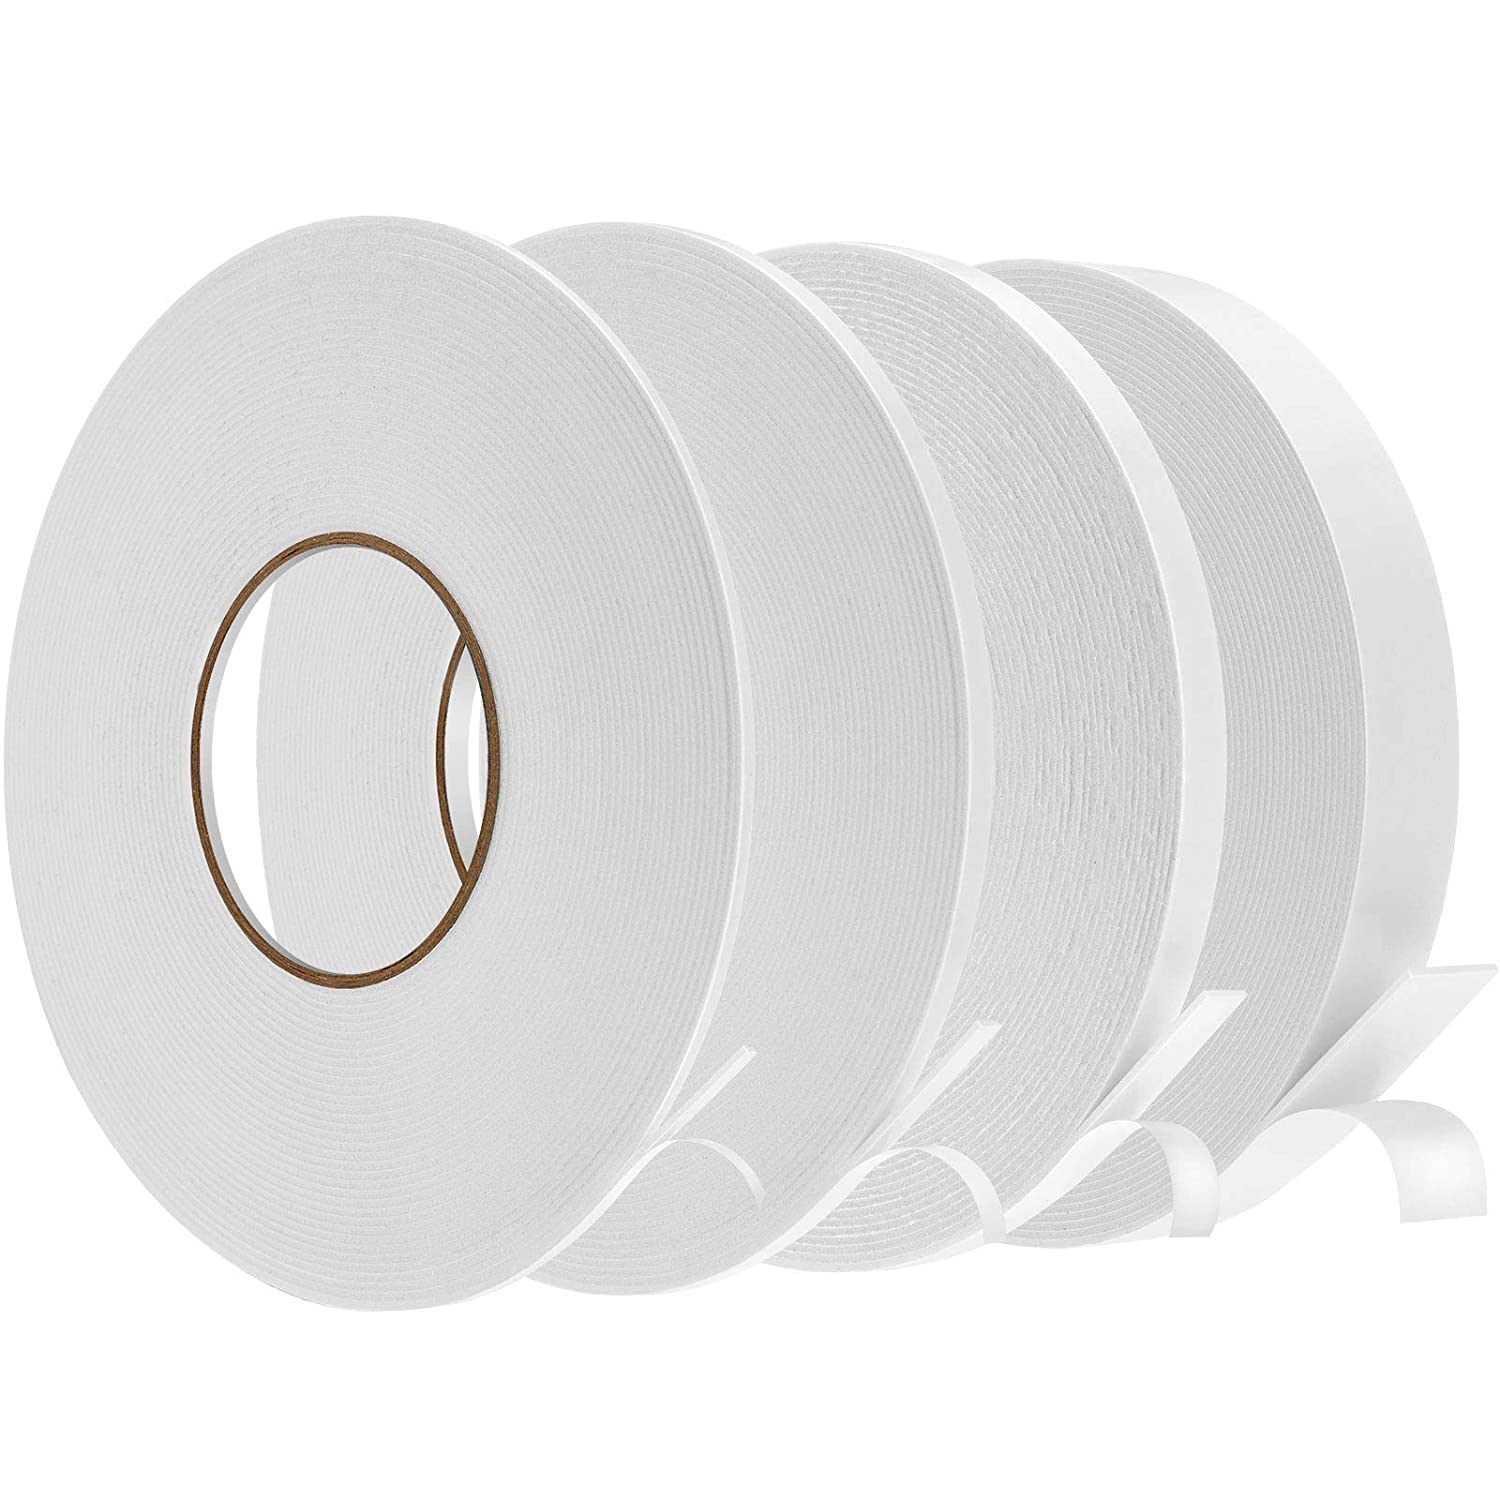 4 Rolls Double Sided Regular store White Tape Foam Adhesive Year-end gift PE